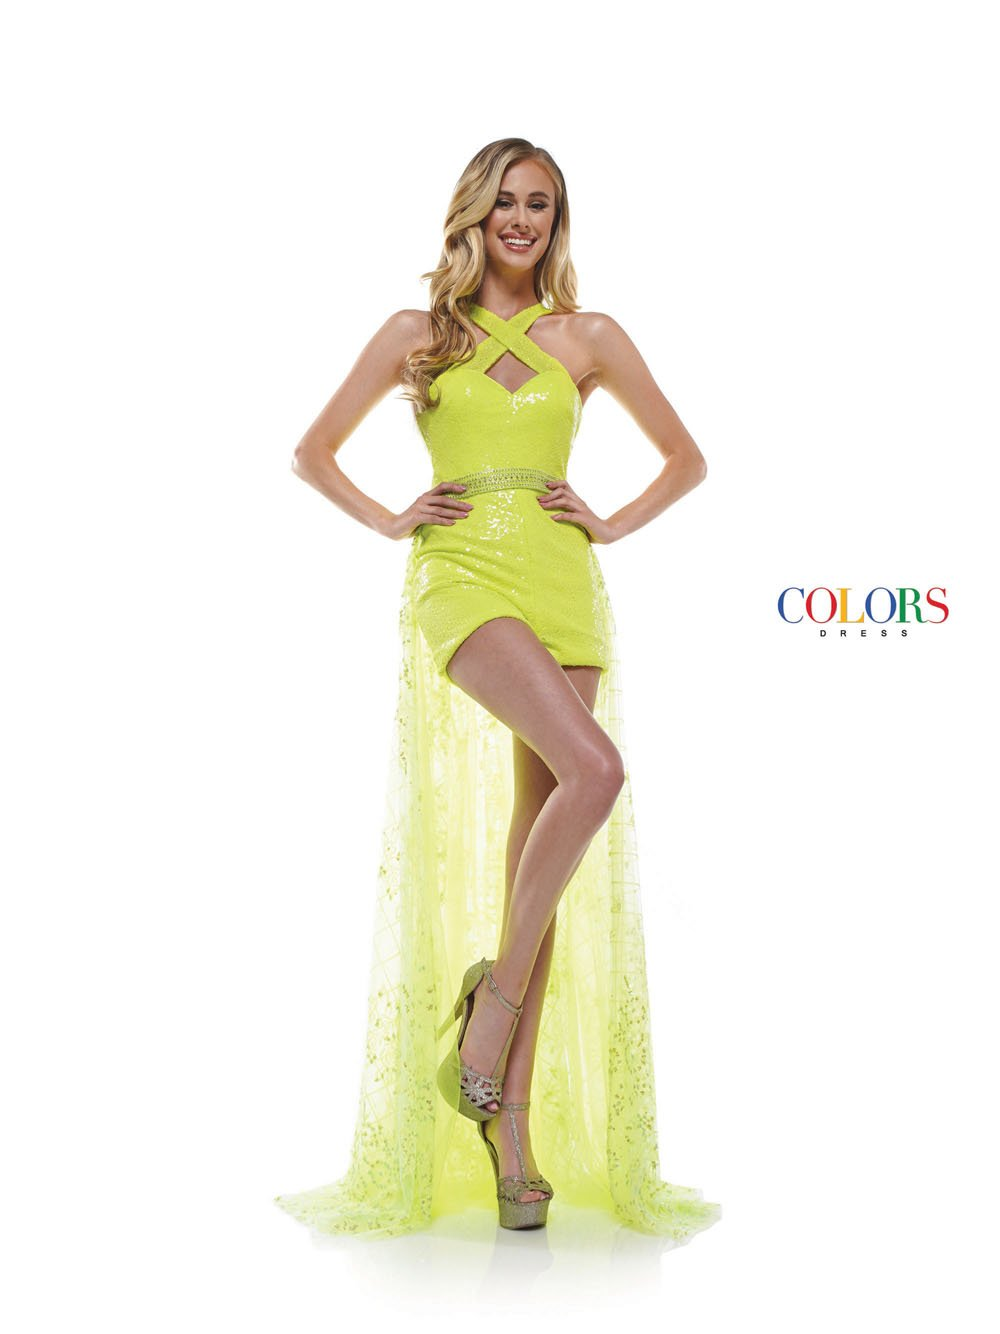 Colors Dress 2346 prom dress images.  Colors 2346 dresses are available in these colors: Black, Lime, Hot Pink, Off White.